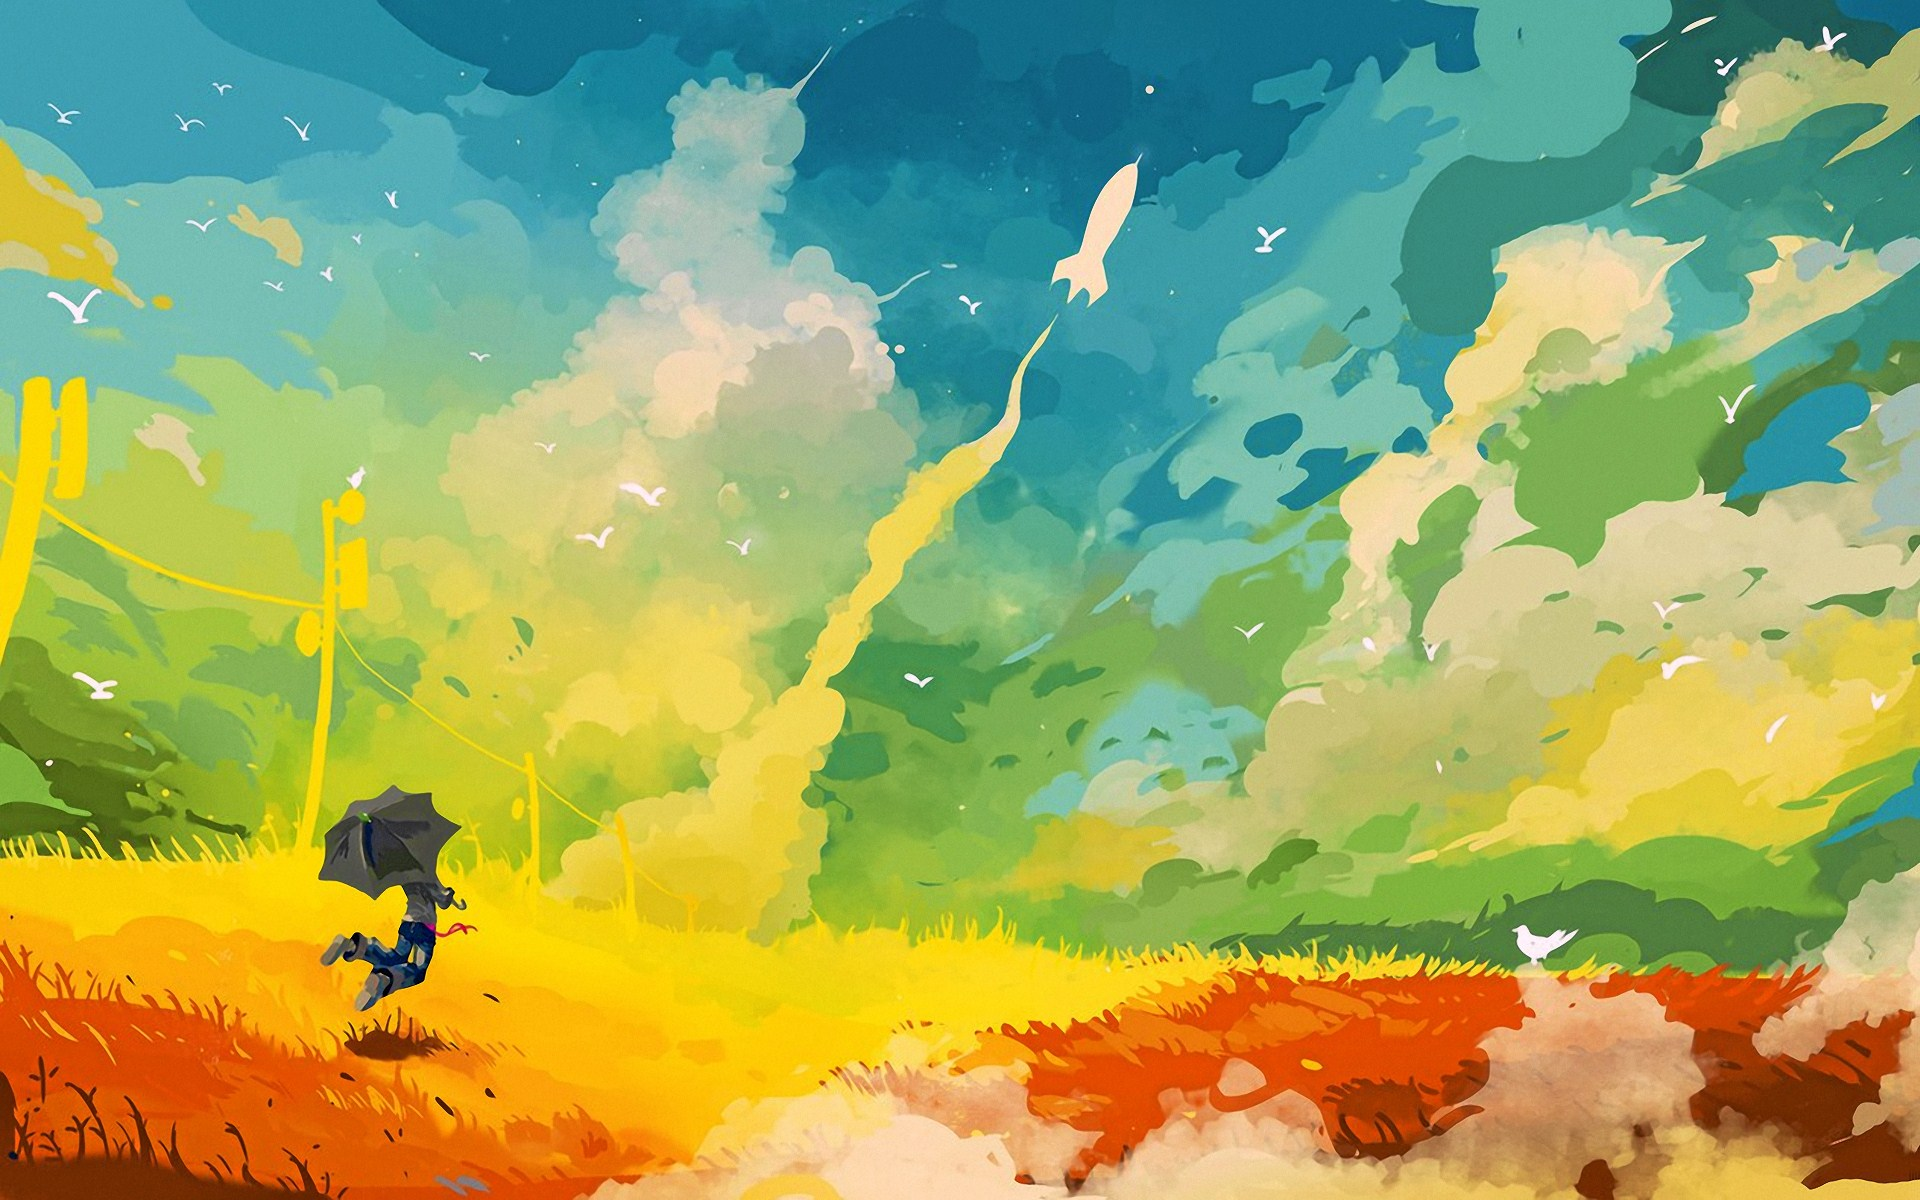 Awesome Art Wallpapers